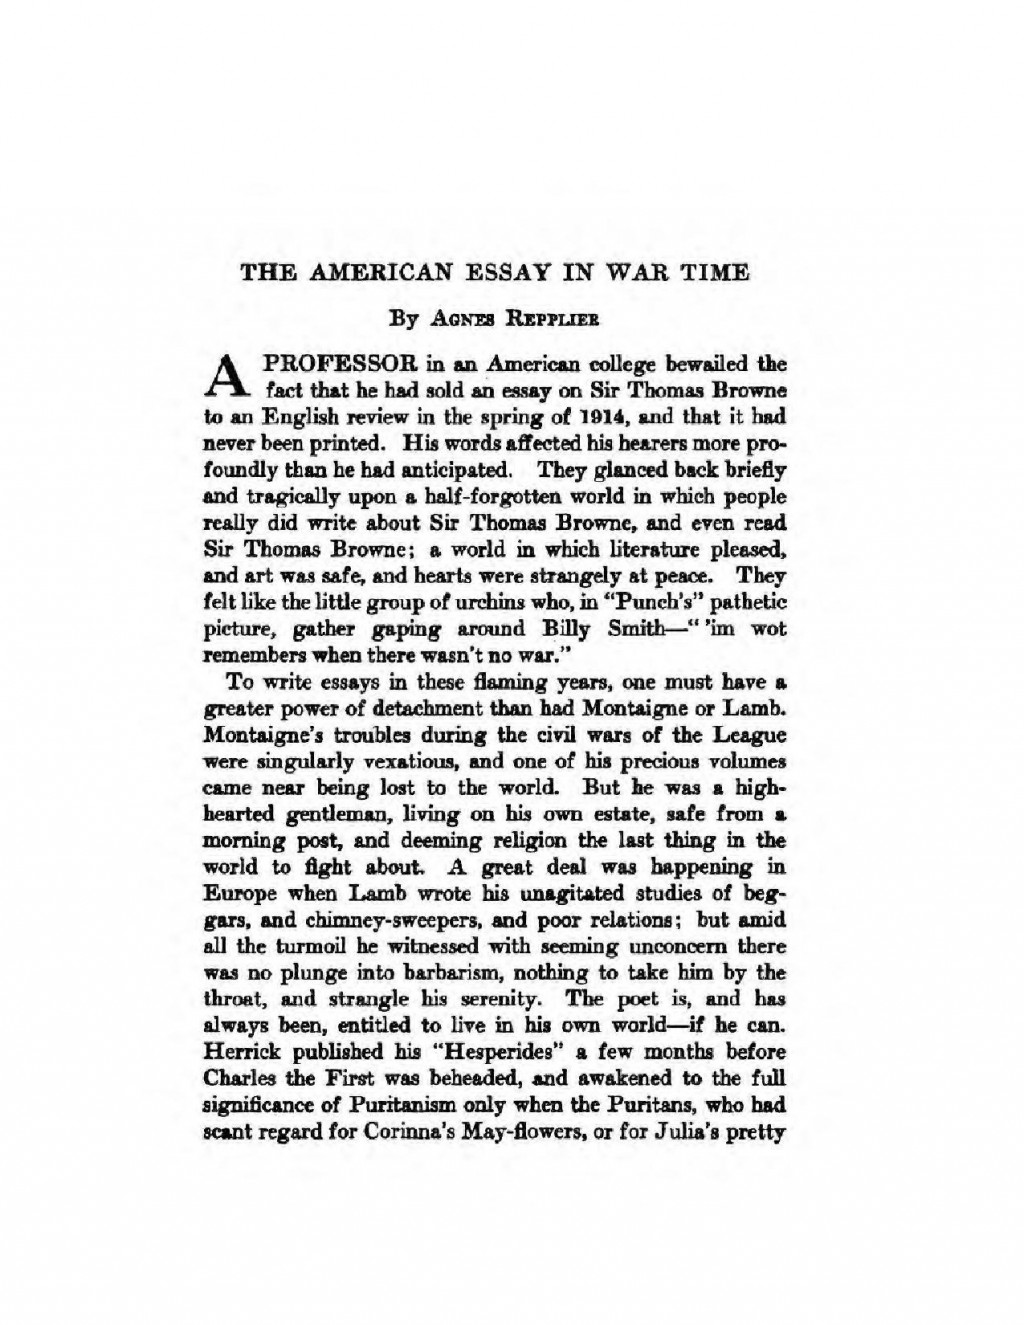 009 Essay Example What Is An American Page1 1275px The In War Time2c Agnes Repplier2c 1918 Stupendous Ideas Definition Crevecoeur Summary Large